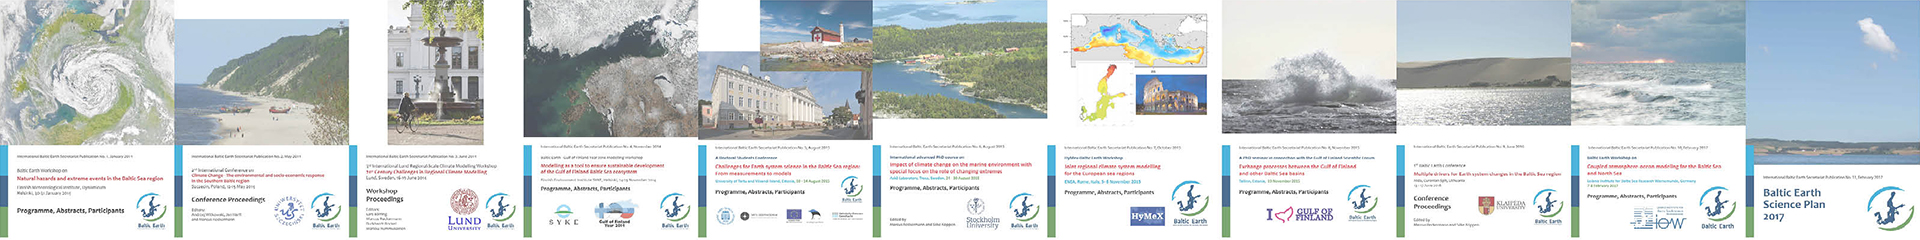 Baltic Earth - Publications Panorama